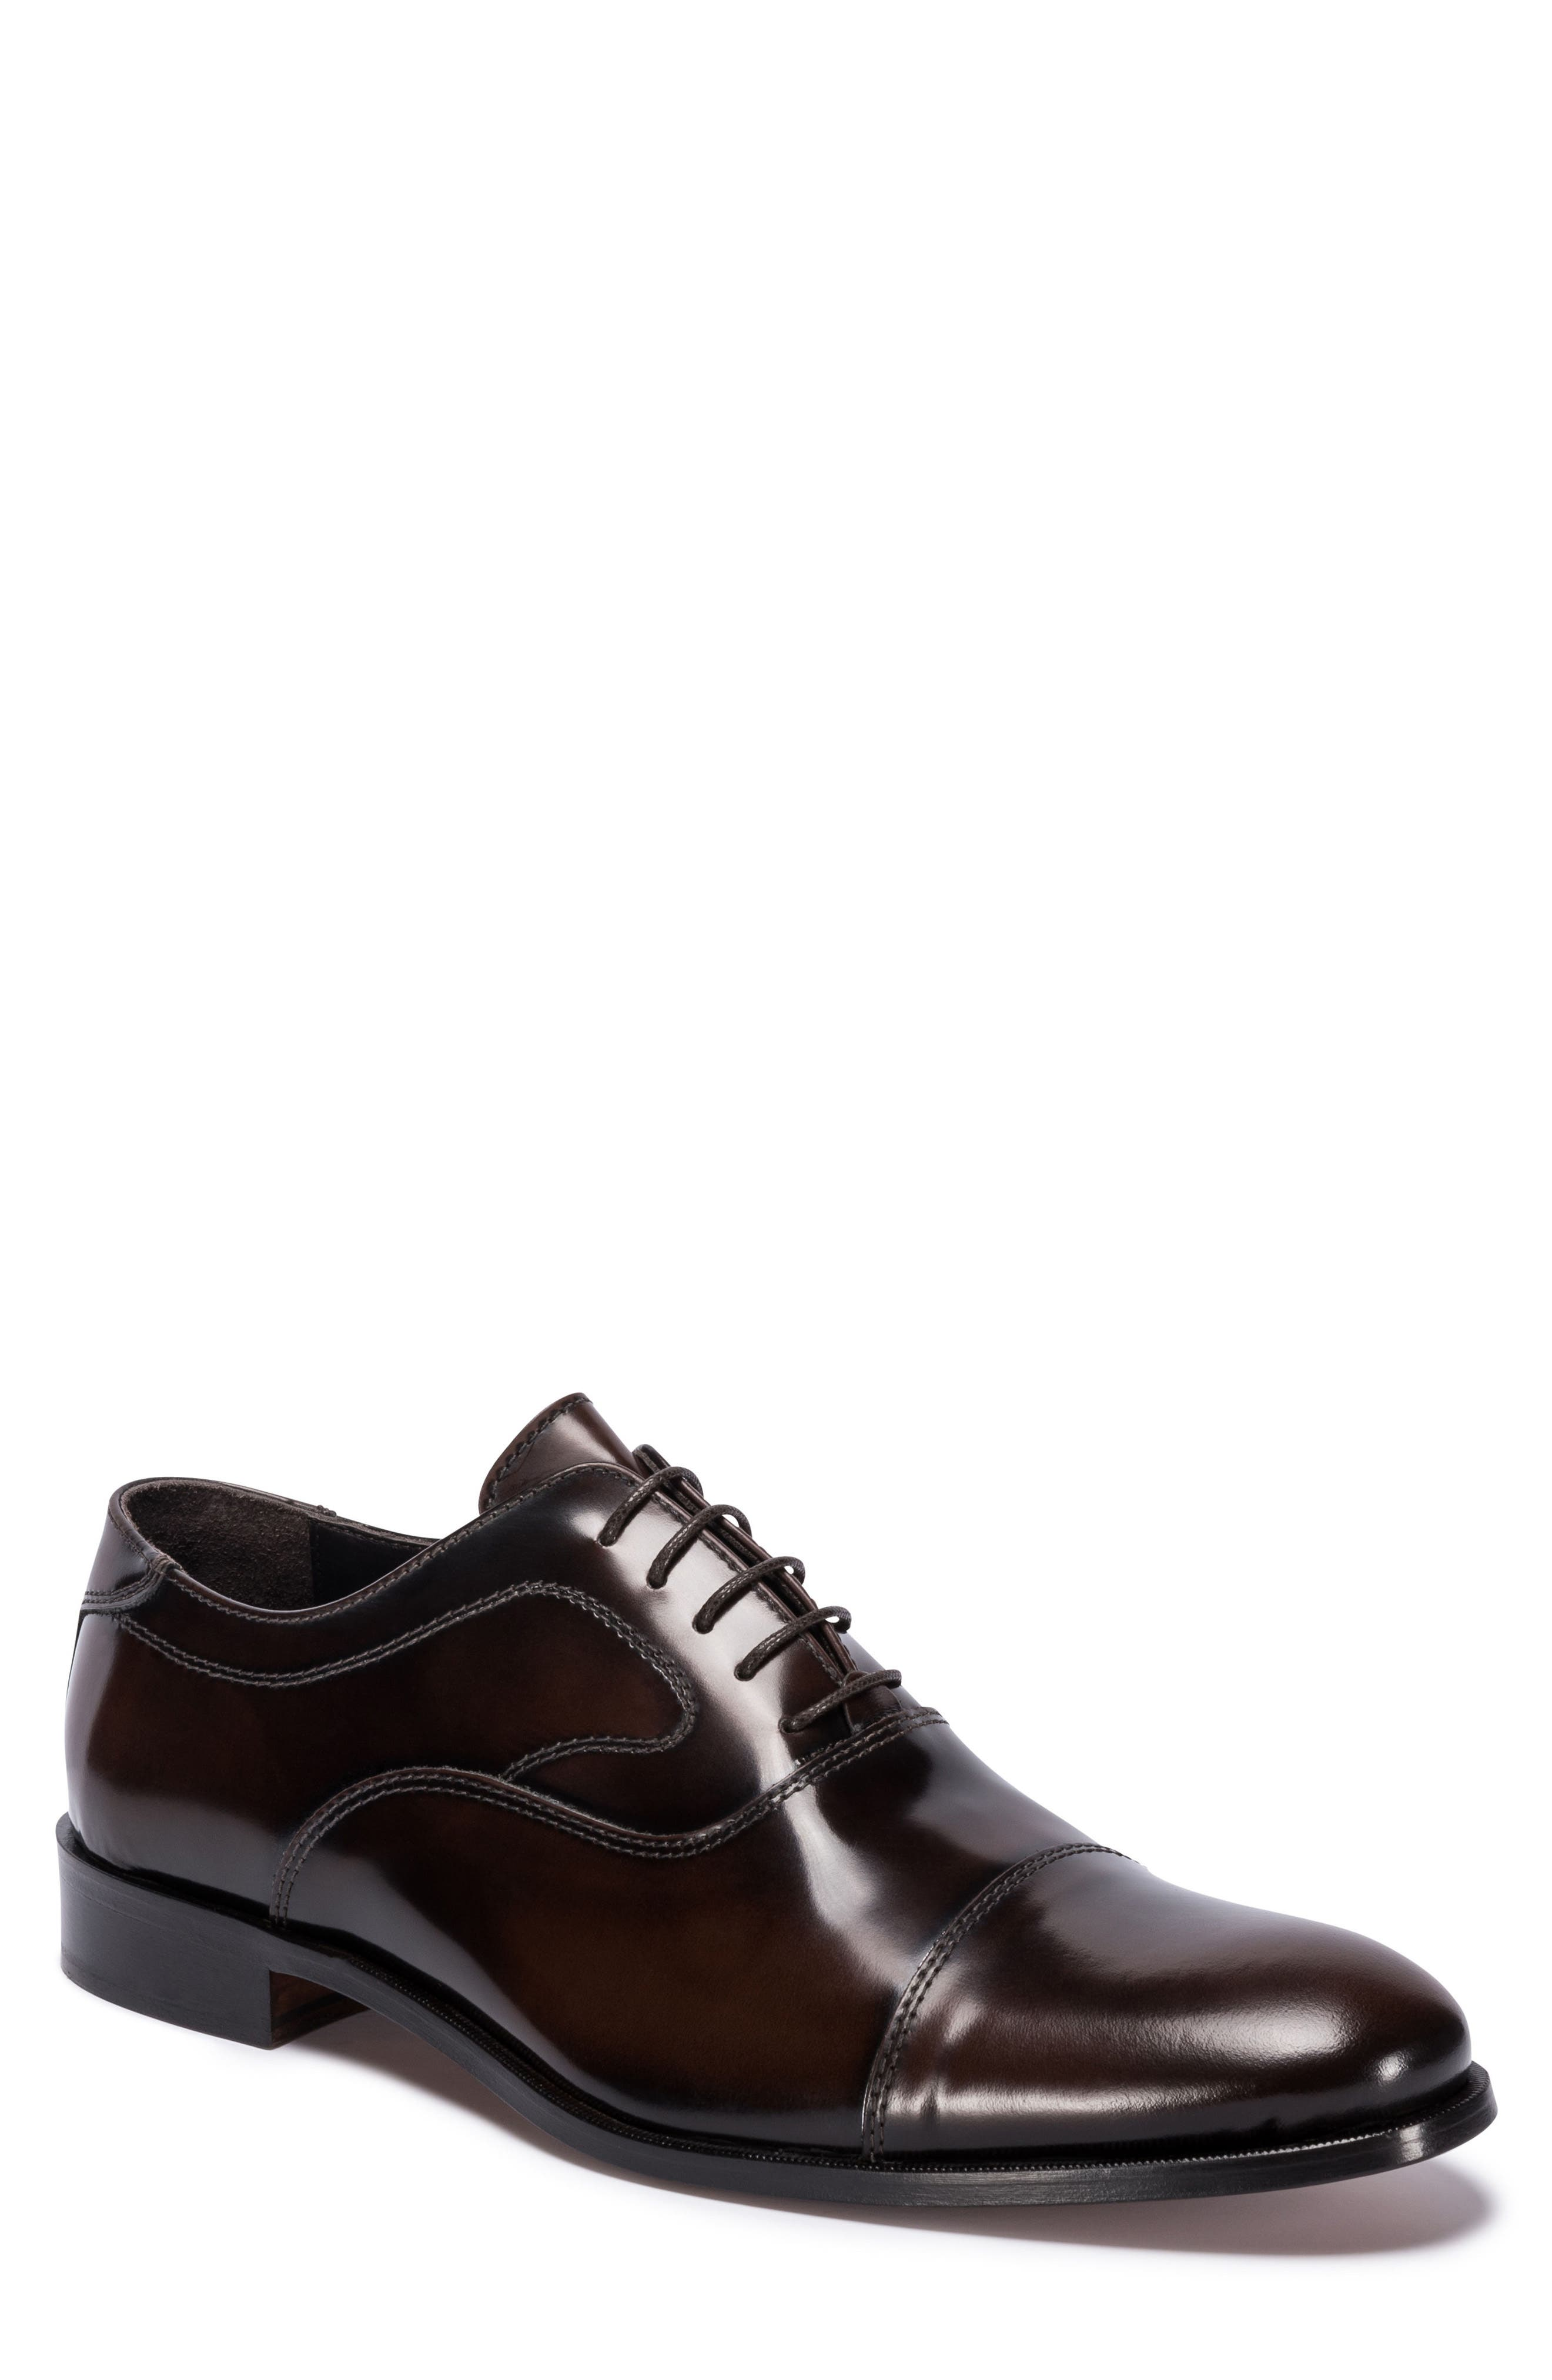 Garda Cap Toe Oxford,                         Main,                         color, 203